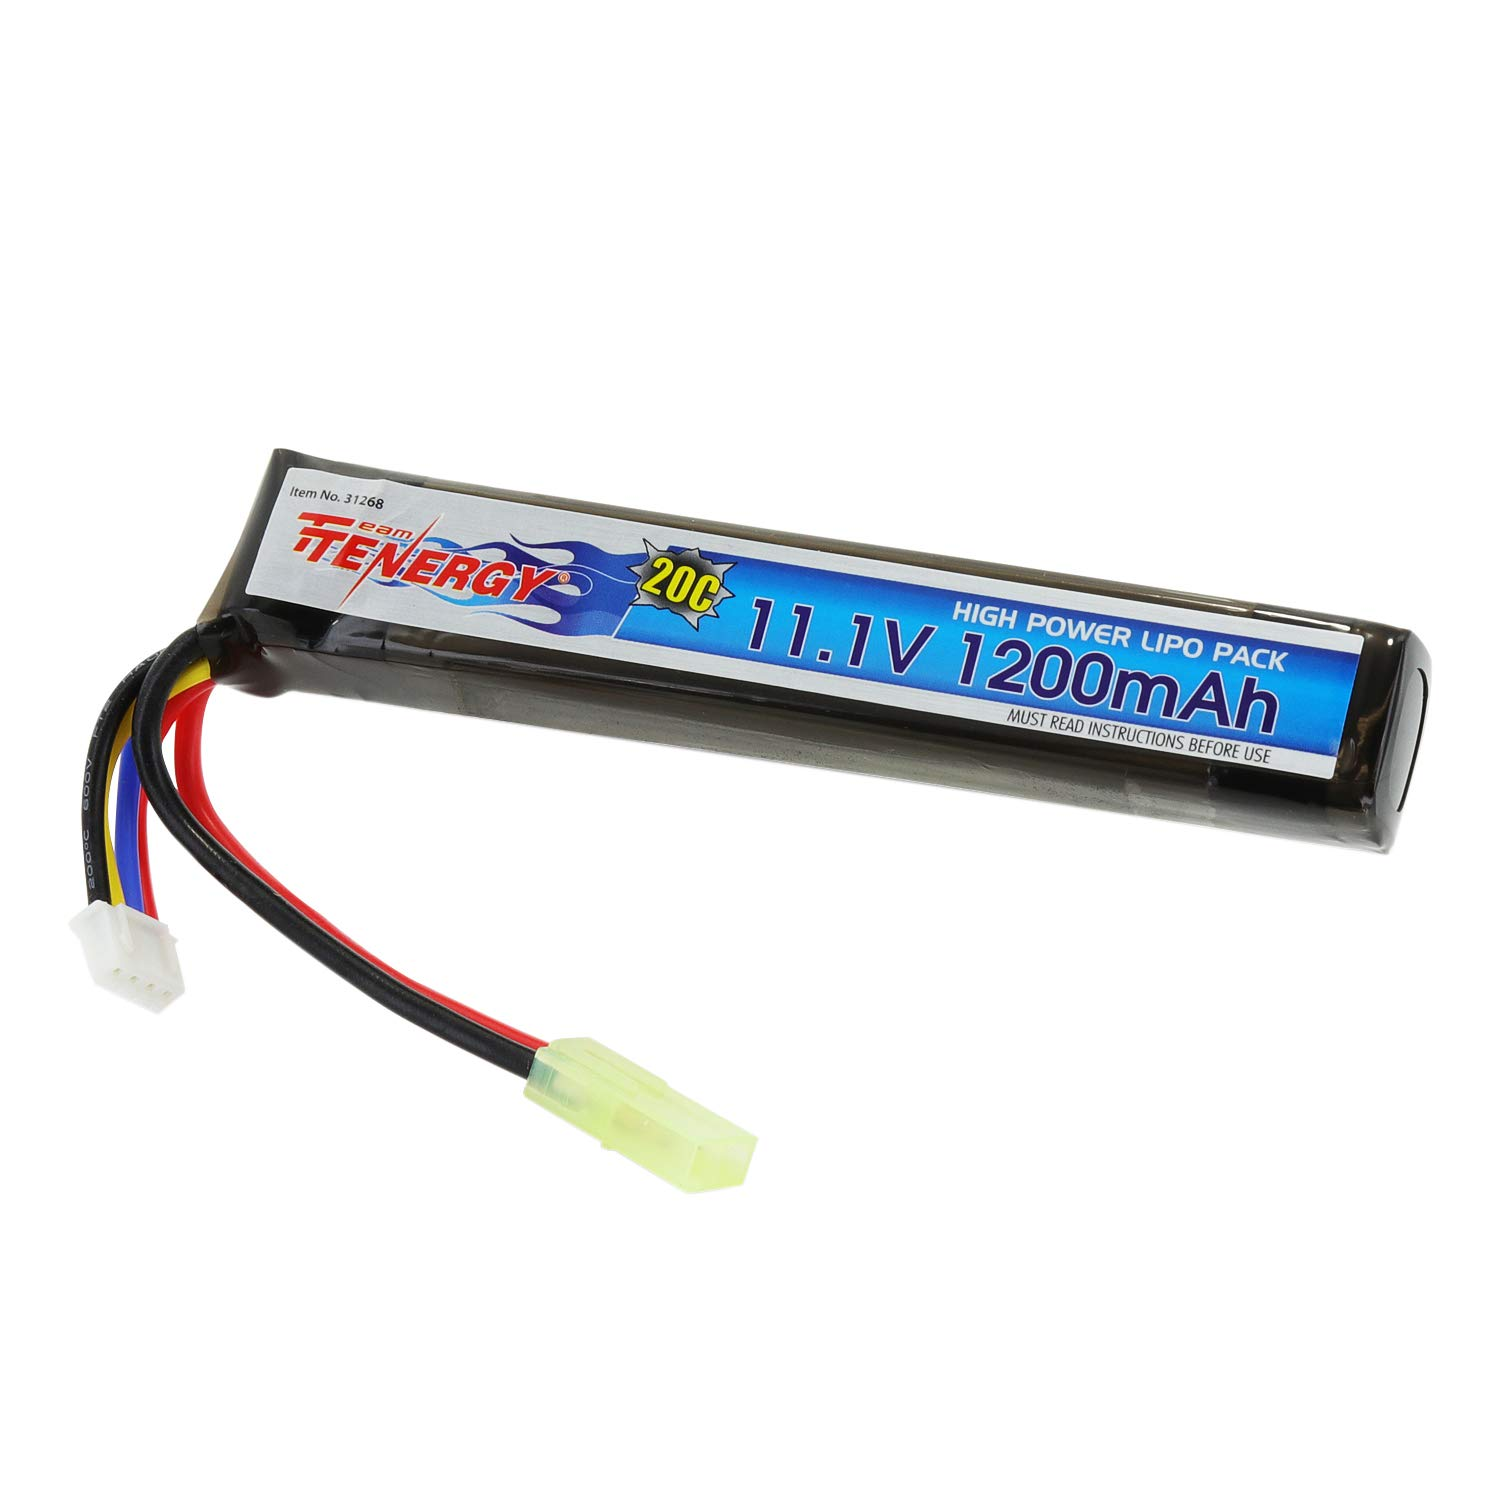 Tenergy 11.1V LiPo Airsoft Battery 1200mAh 20C Short Stick Battery Pack with Mini Tamiya Connector for AEG, Airsoft Guns AK47, MP5k, MP5 PDW, RPK, PKM (Optional Charger)